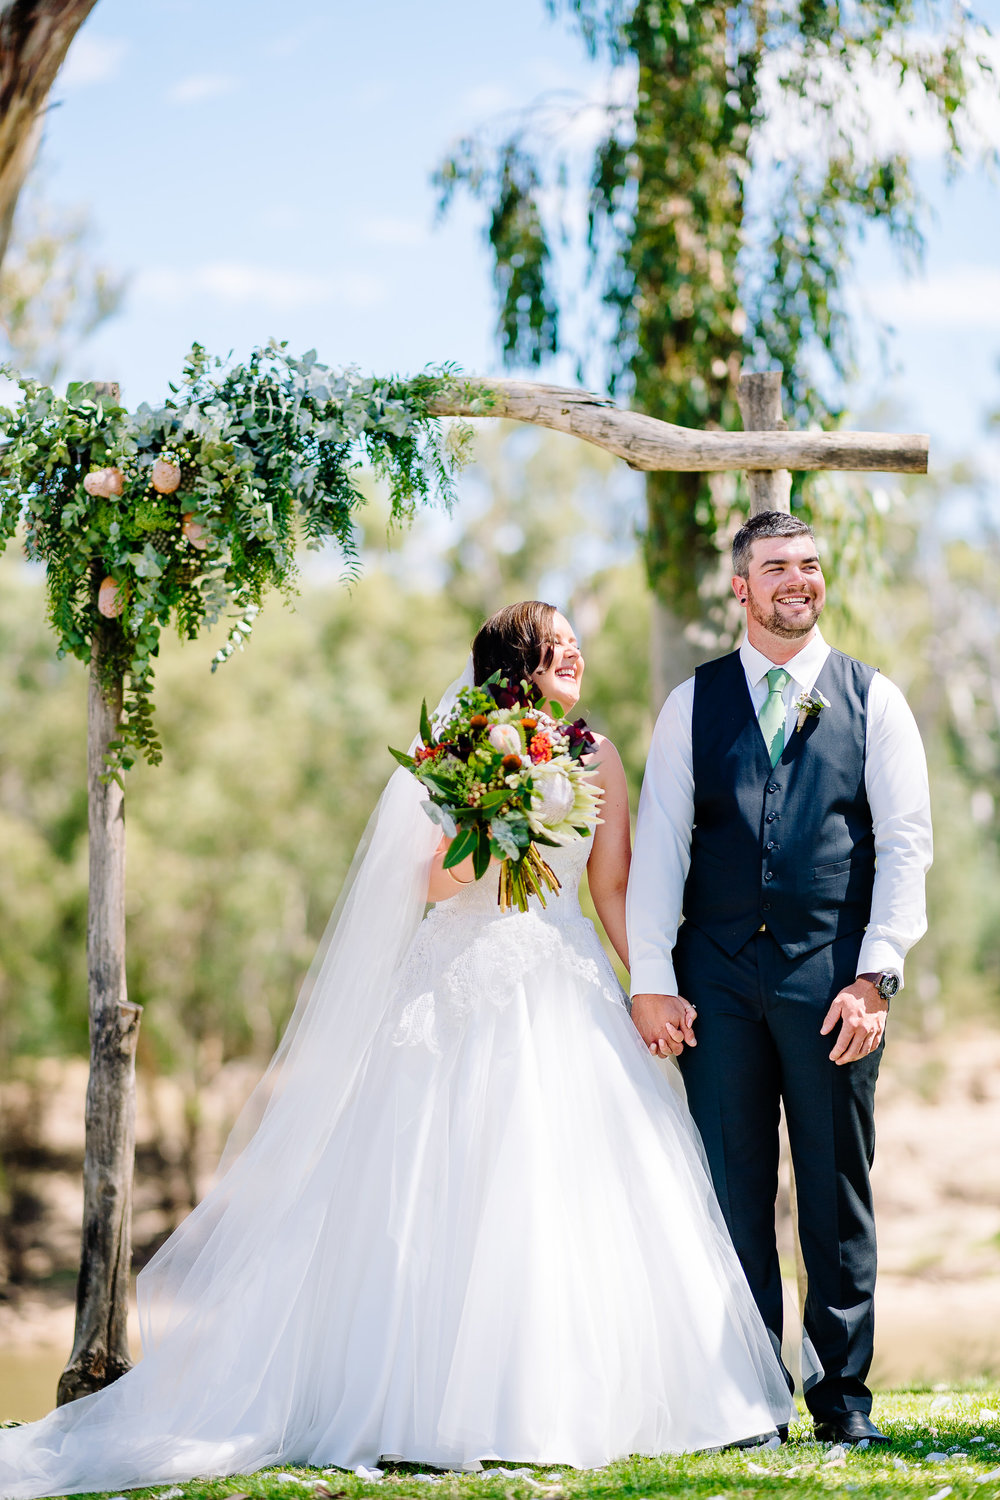 Justin_Jim_Echuca_Wedding_Photography_Tindarra-146.JPG